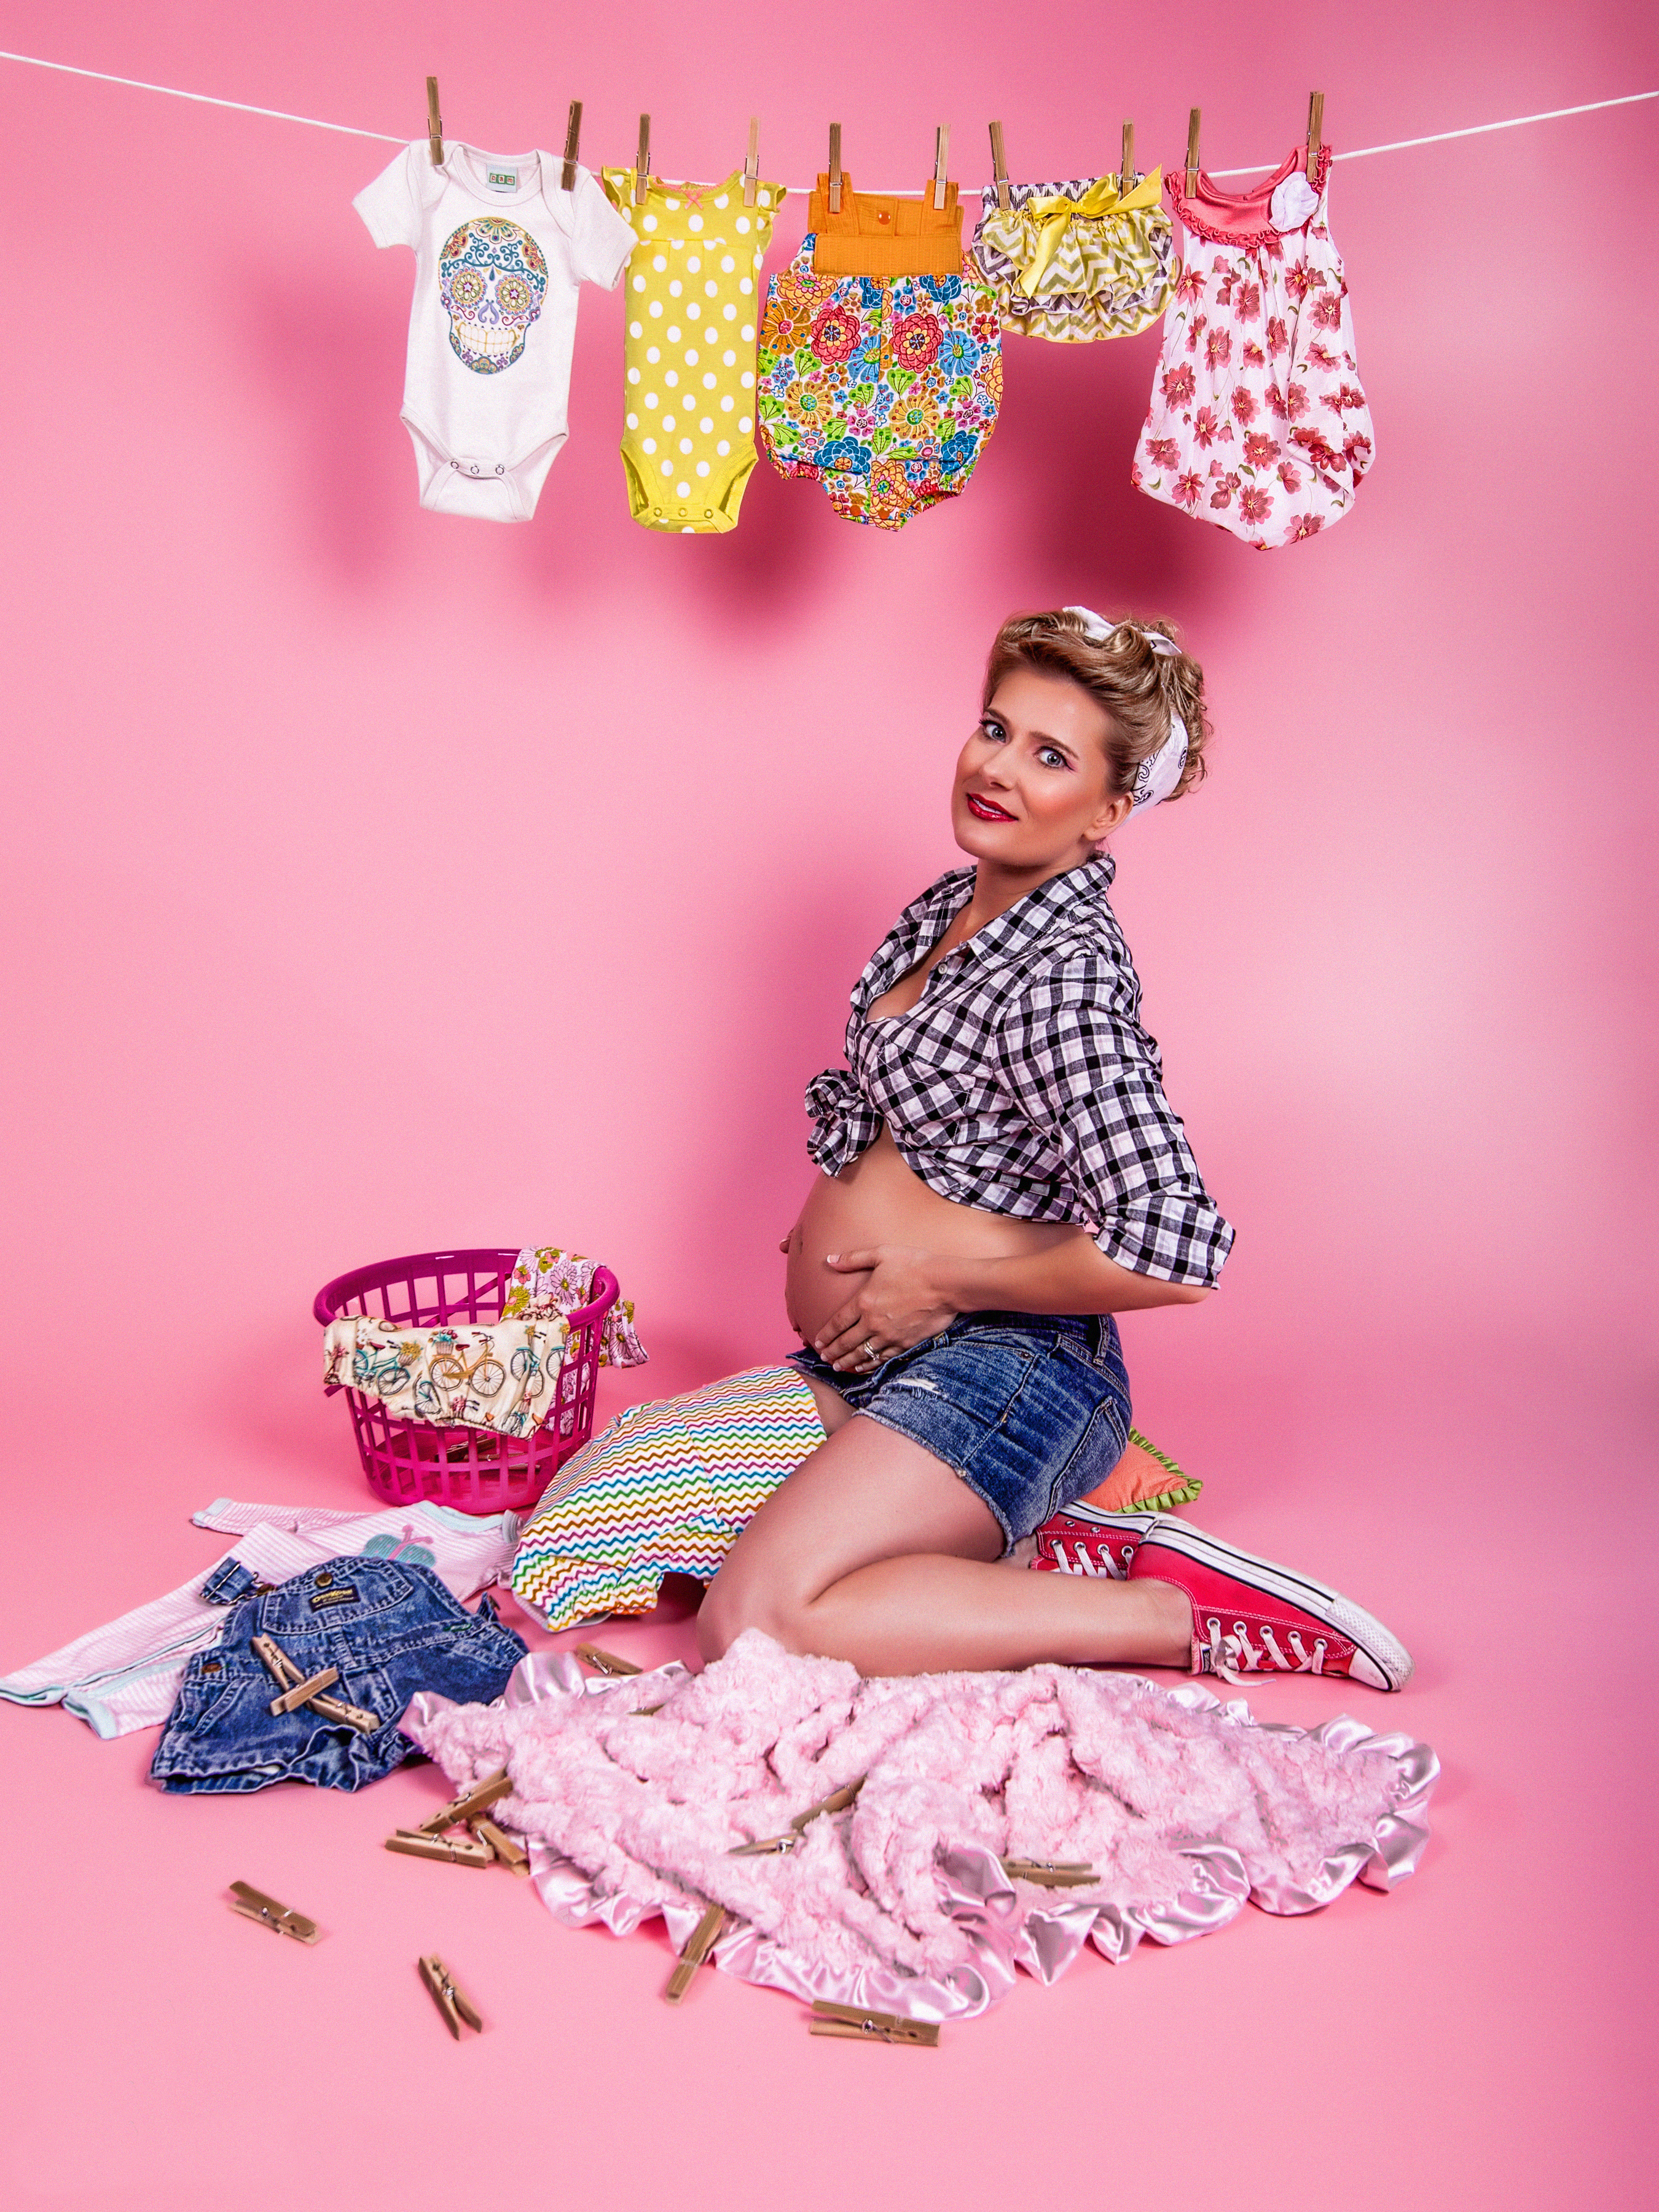 Pregnant pin ups are challenging beauty norms racked mindy hylton in character and costume with dixie pin up photo ben cook ombrellifo Gallery